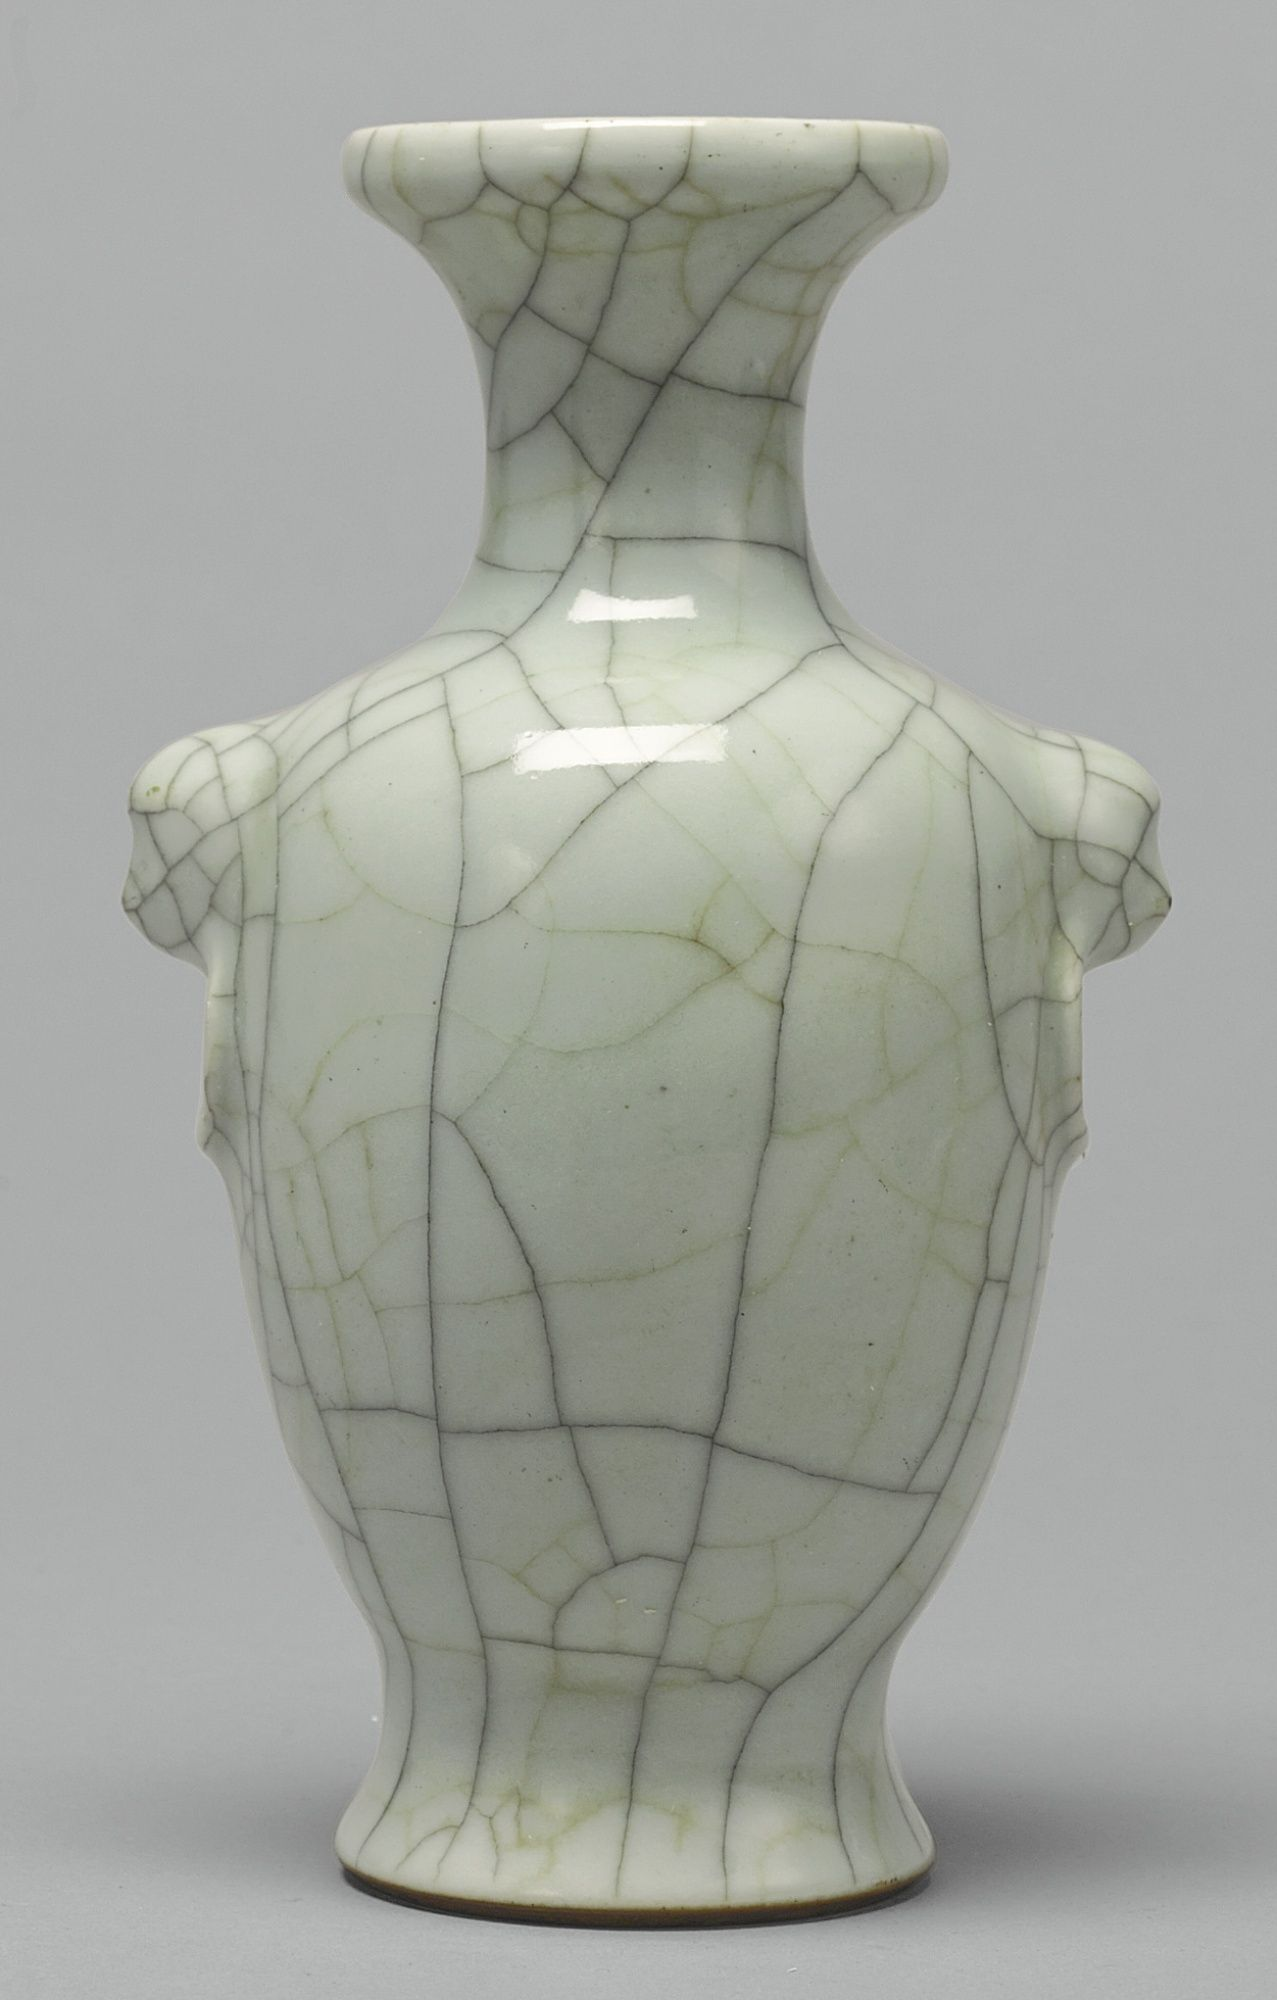 A GUAN-TYPE VASE<br>QING DYNASTY, 8TH / 8TH CENTURY  lot